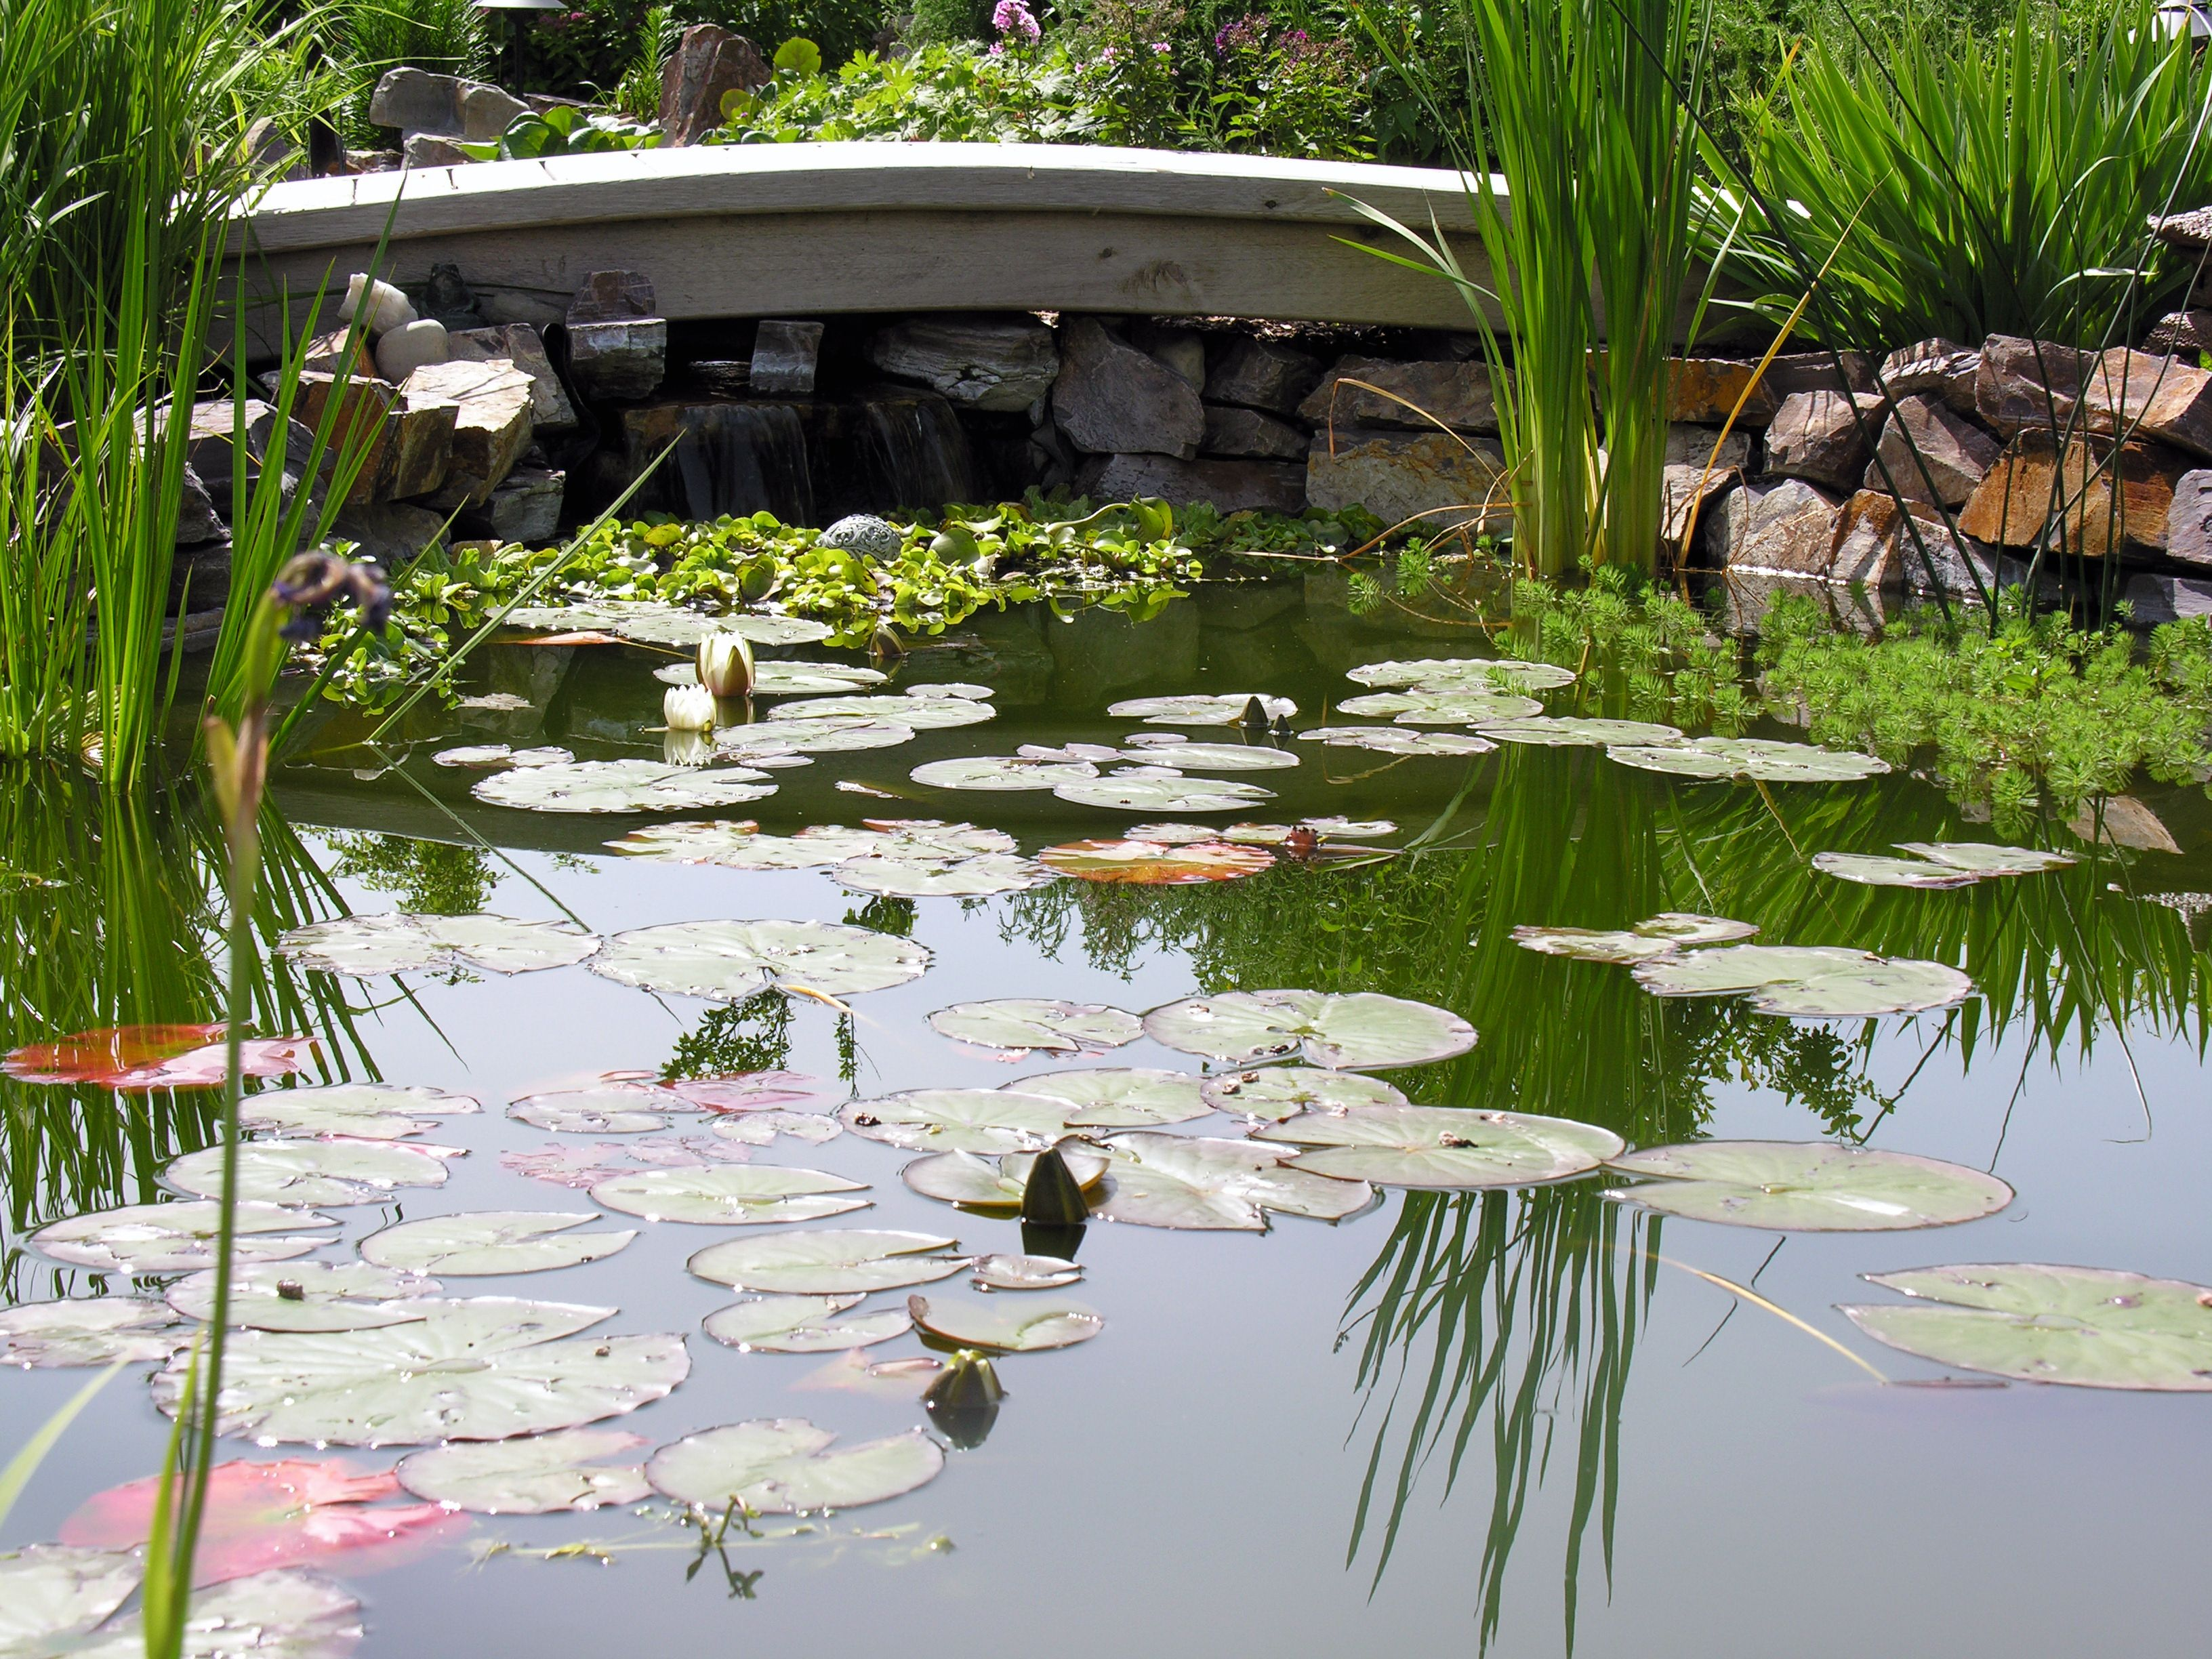 A wooden bridge crosses a koi pond with lily pads. We love this custom landscaping that we created for a client!